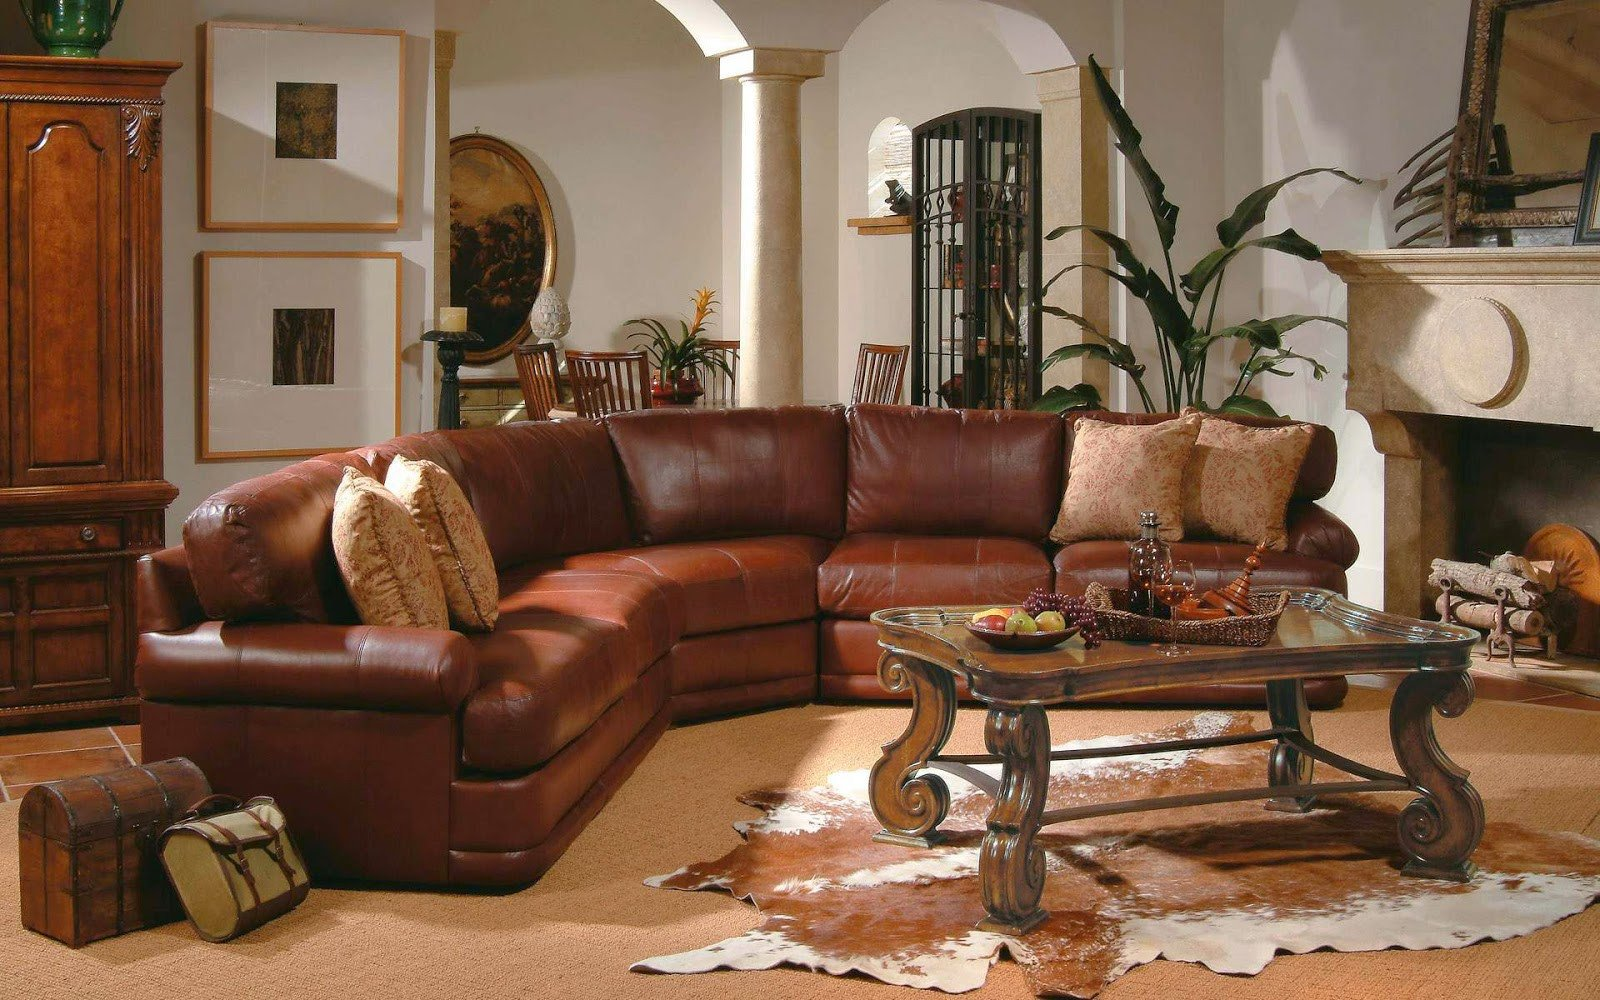 Brown Living Room Decor Ideas Lovely 6 Living Room Decor Ideas with Sectional